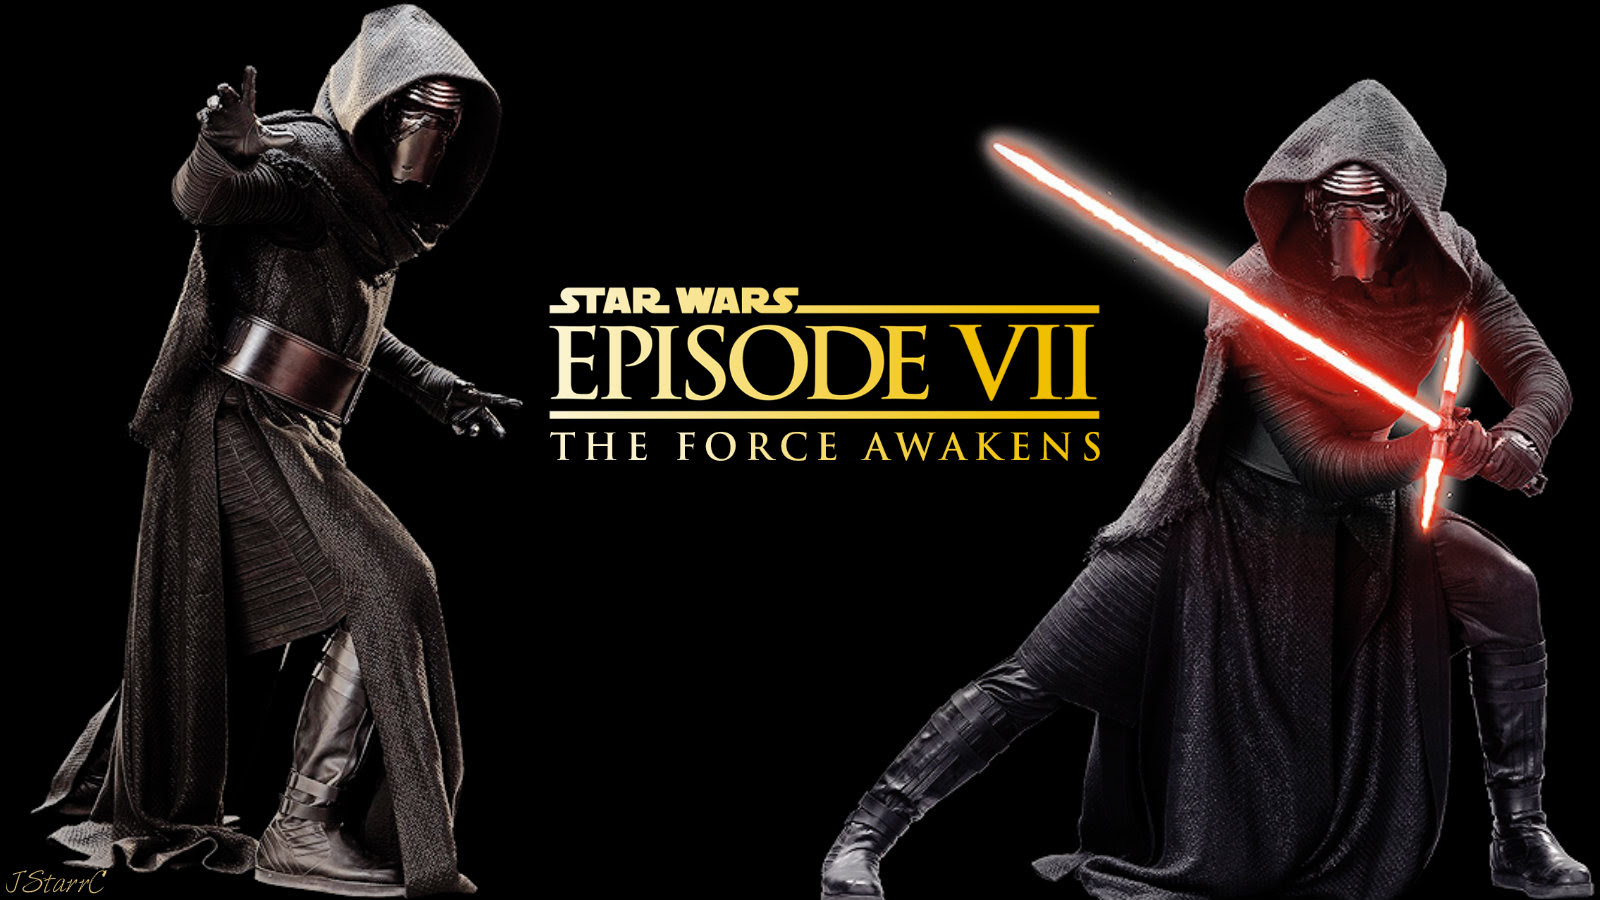 Star Wars Episode Vii The Force Awakens Star Wars Wallpaper